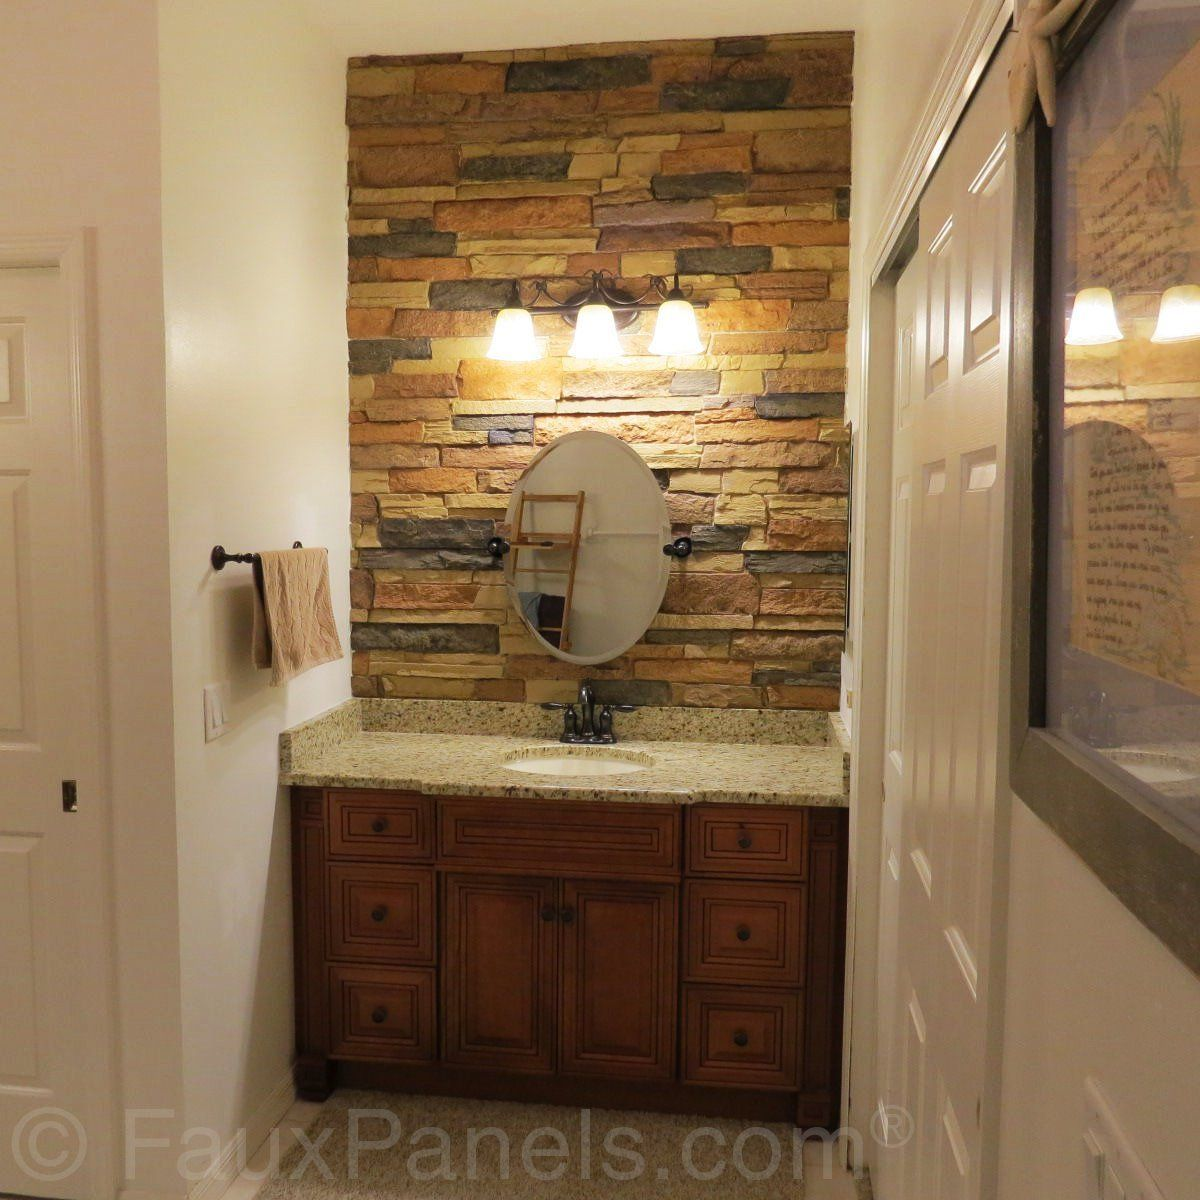 Bathroom Design Ideas  Remodeling Pics With Faux Stone  Creative Captivating Bathroom Design Norwich Design Inspiration